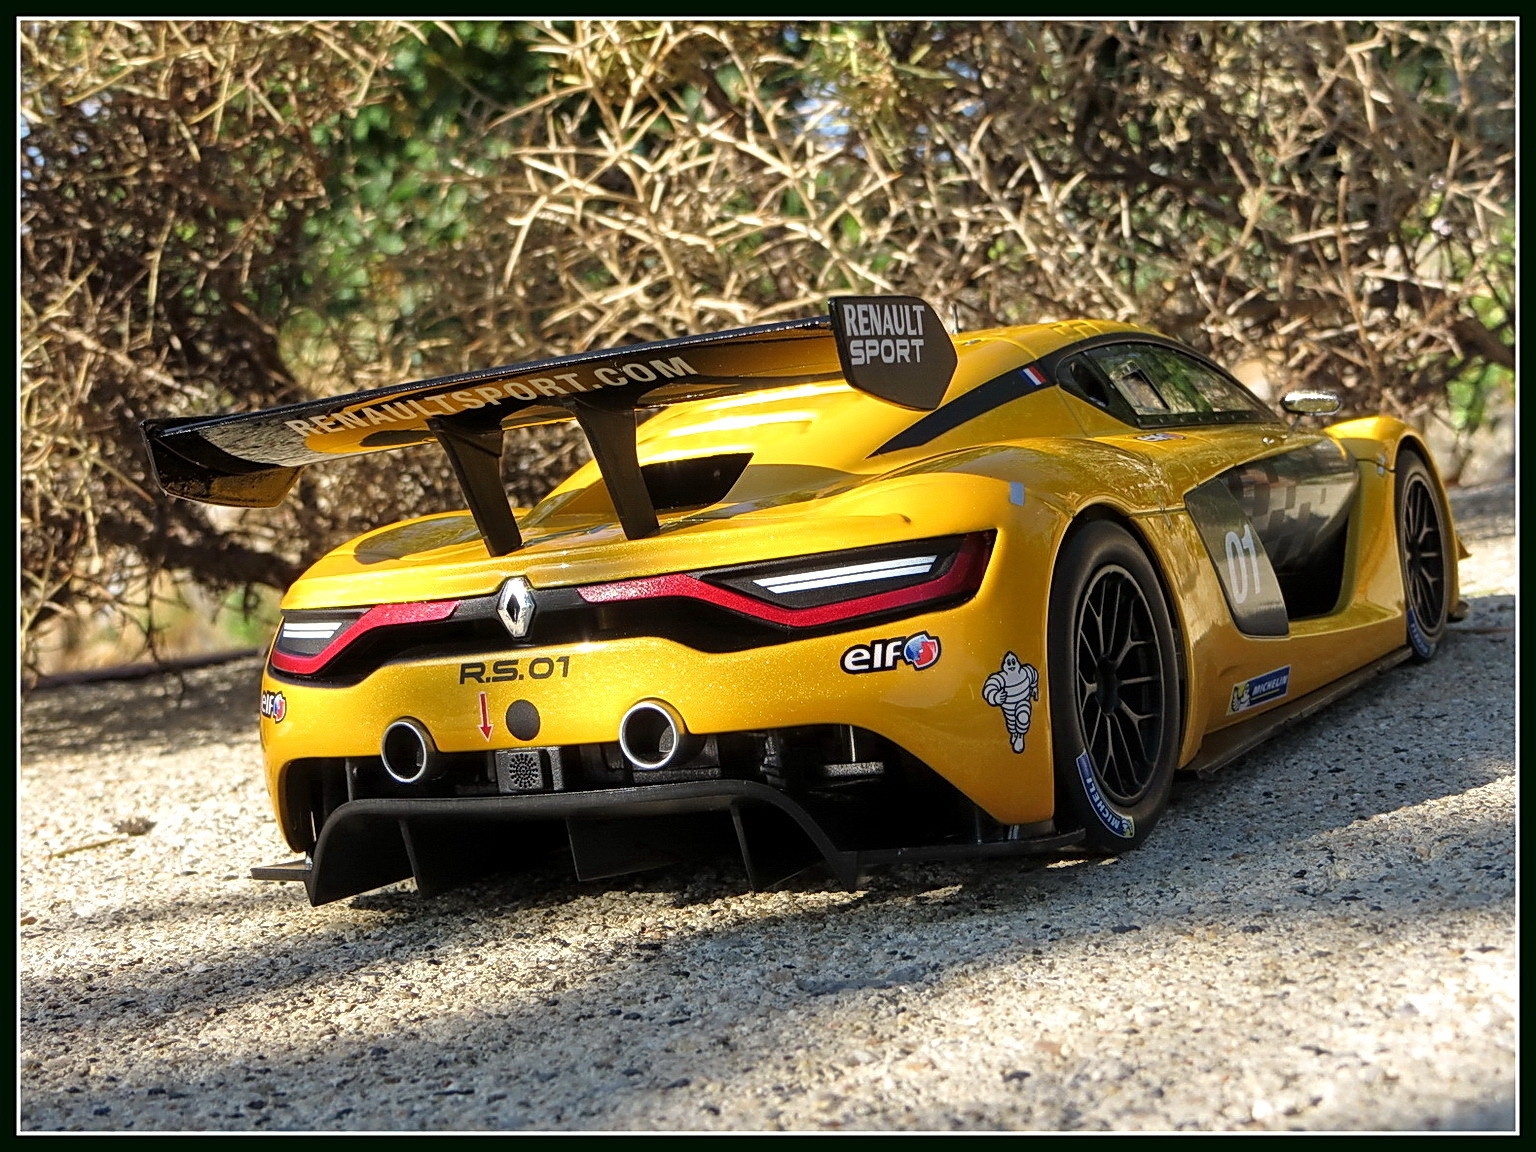 renault-rs 01-2015-014